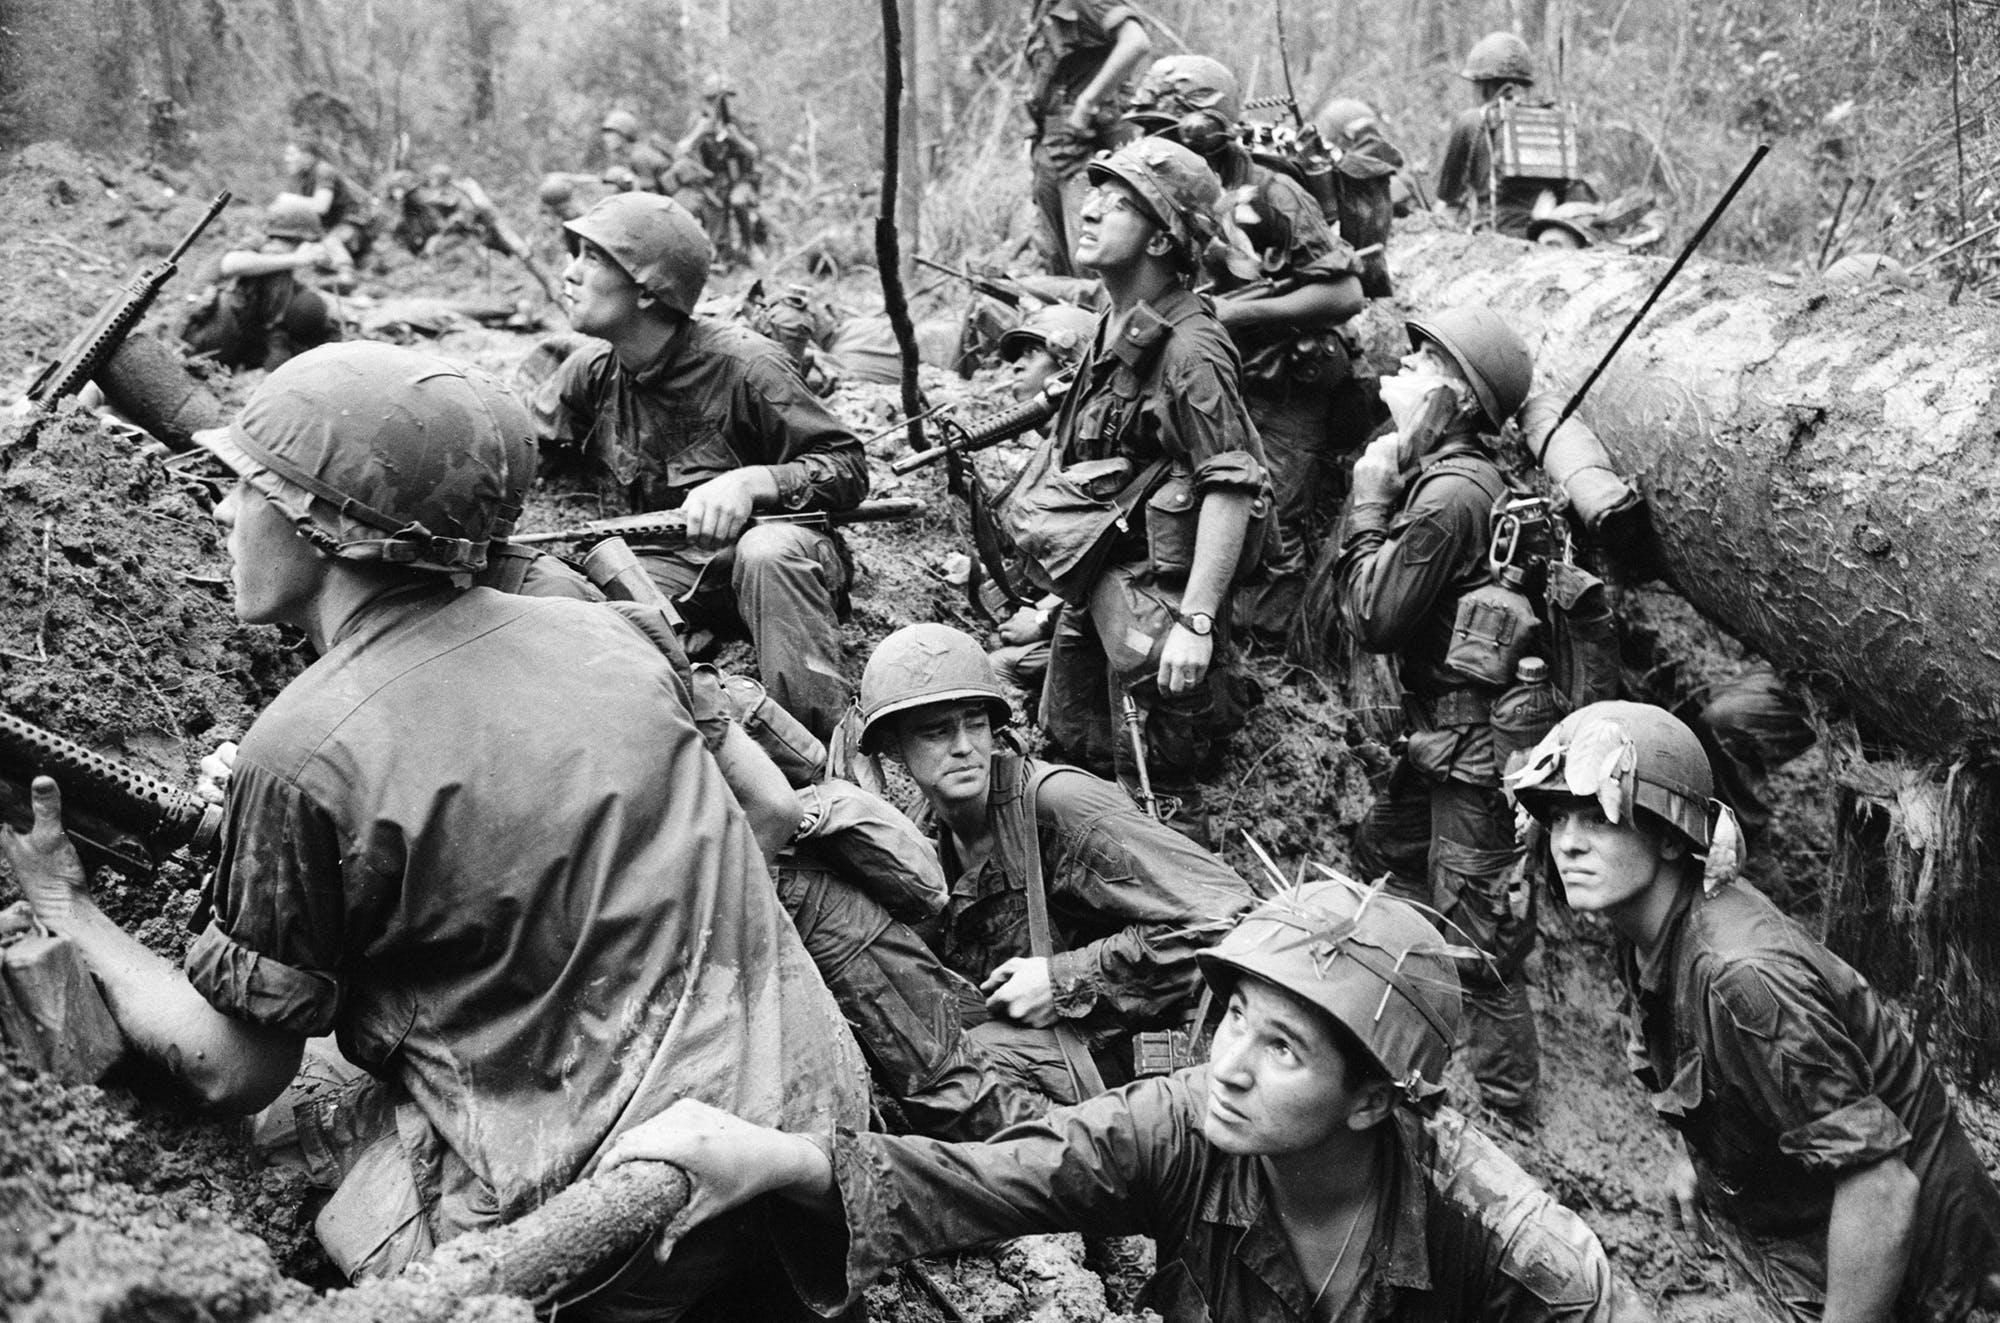 Watch 7 Groundbreaking War Photos That Changed The Way We View The World video